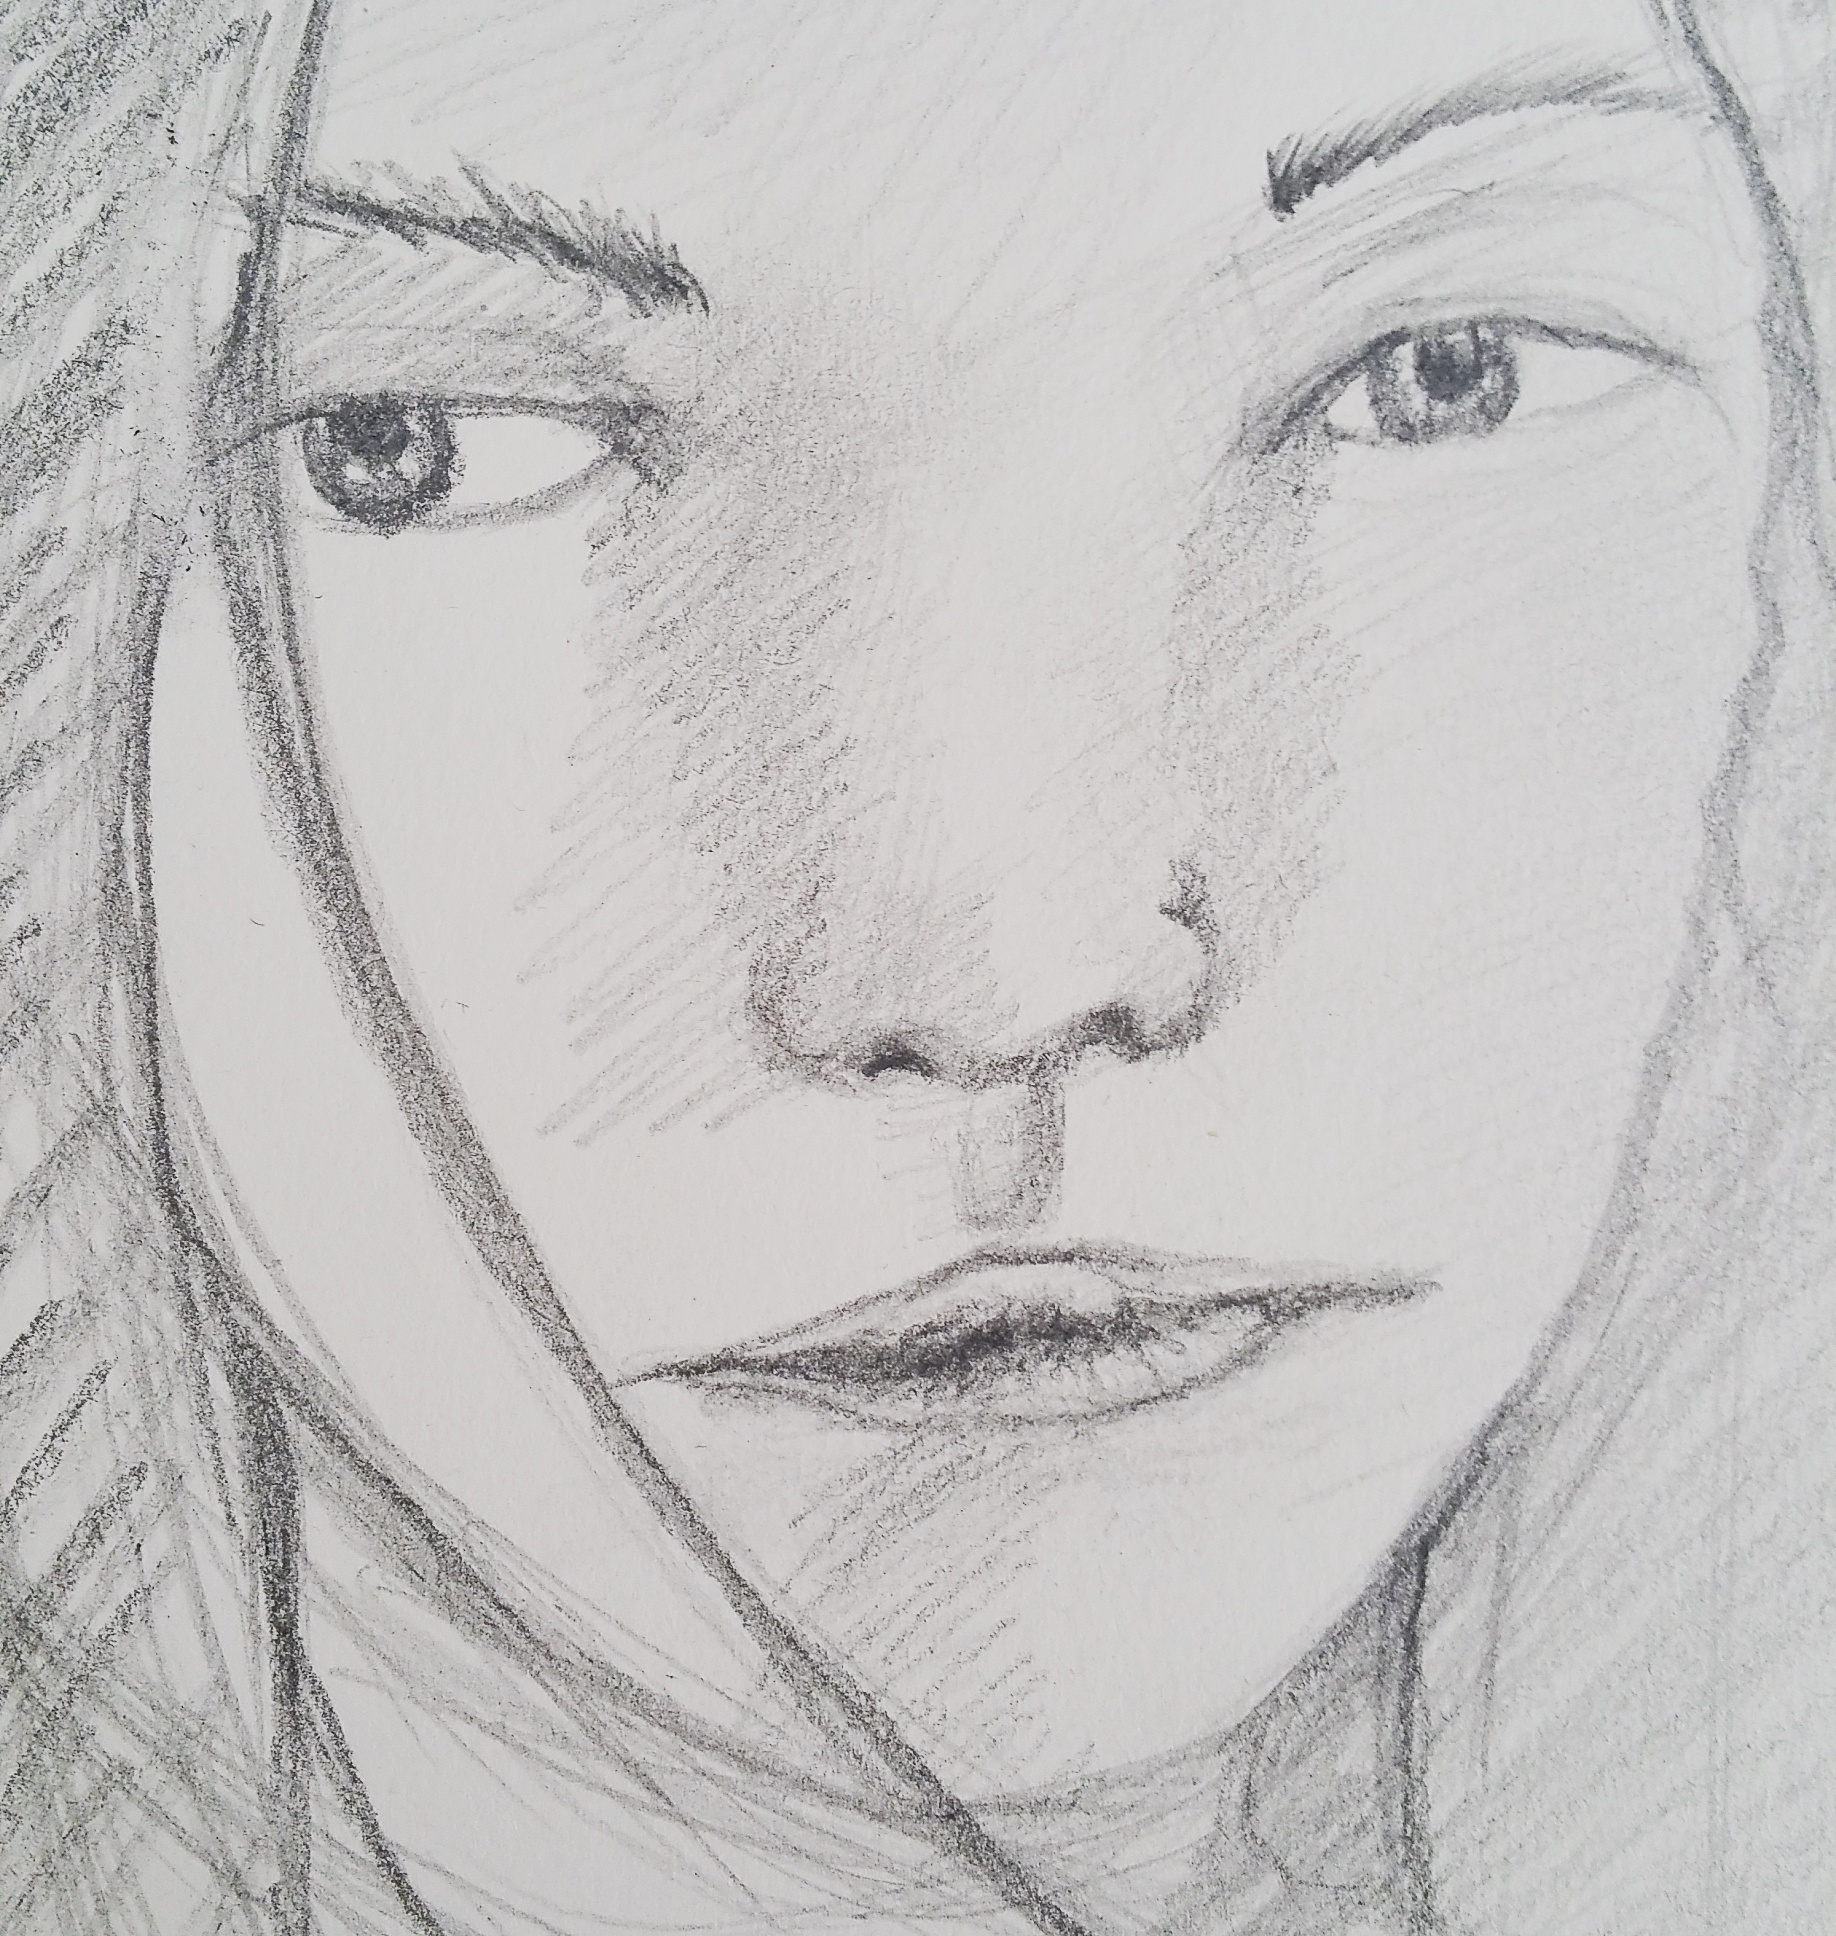 Day 13 - Portrait Sketch